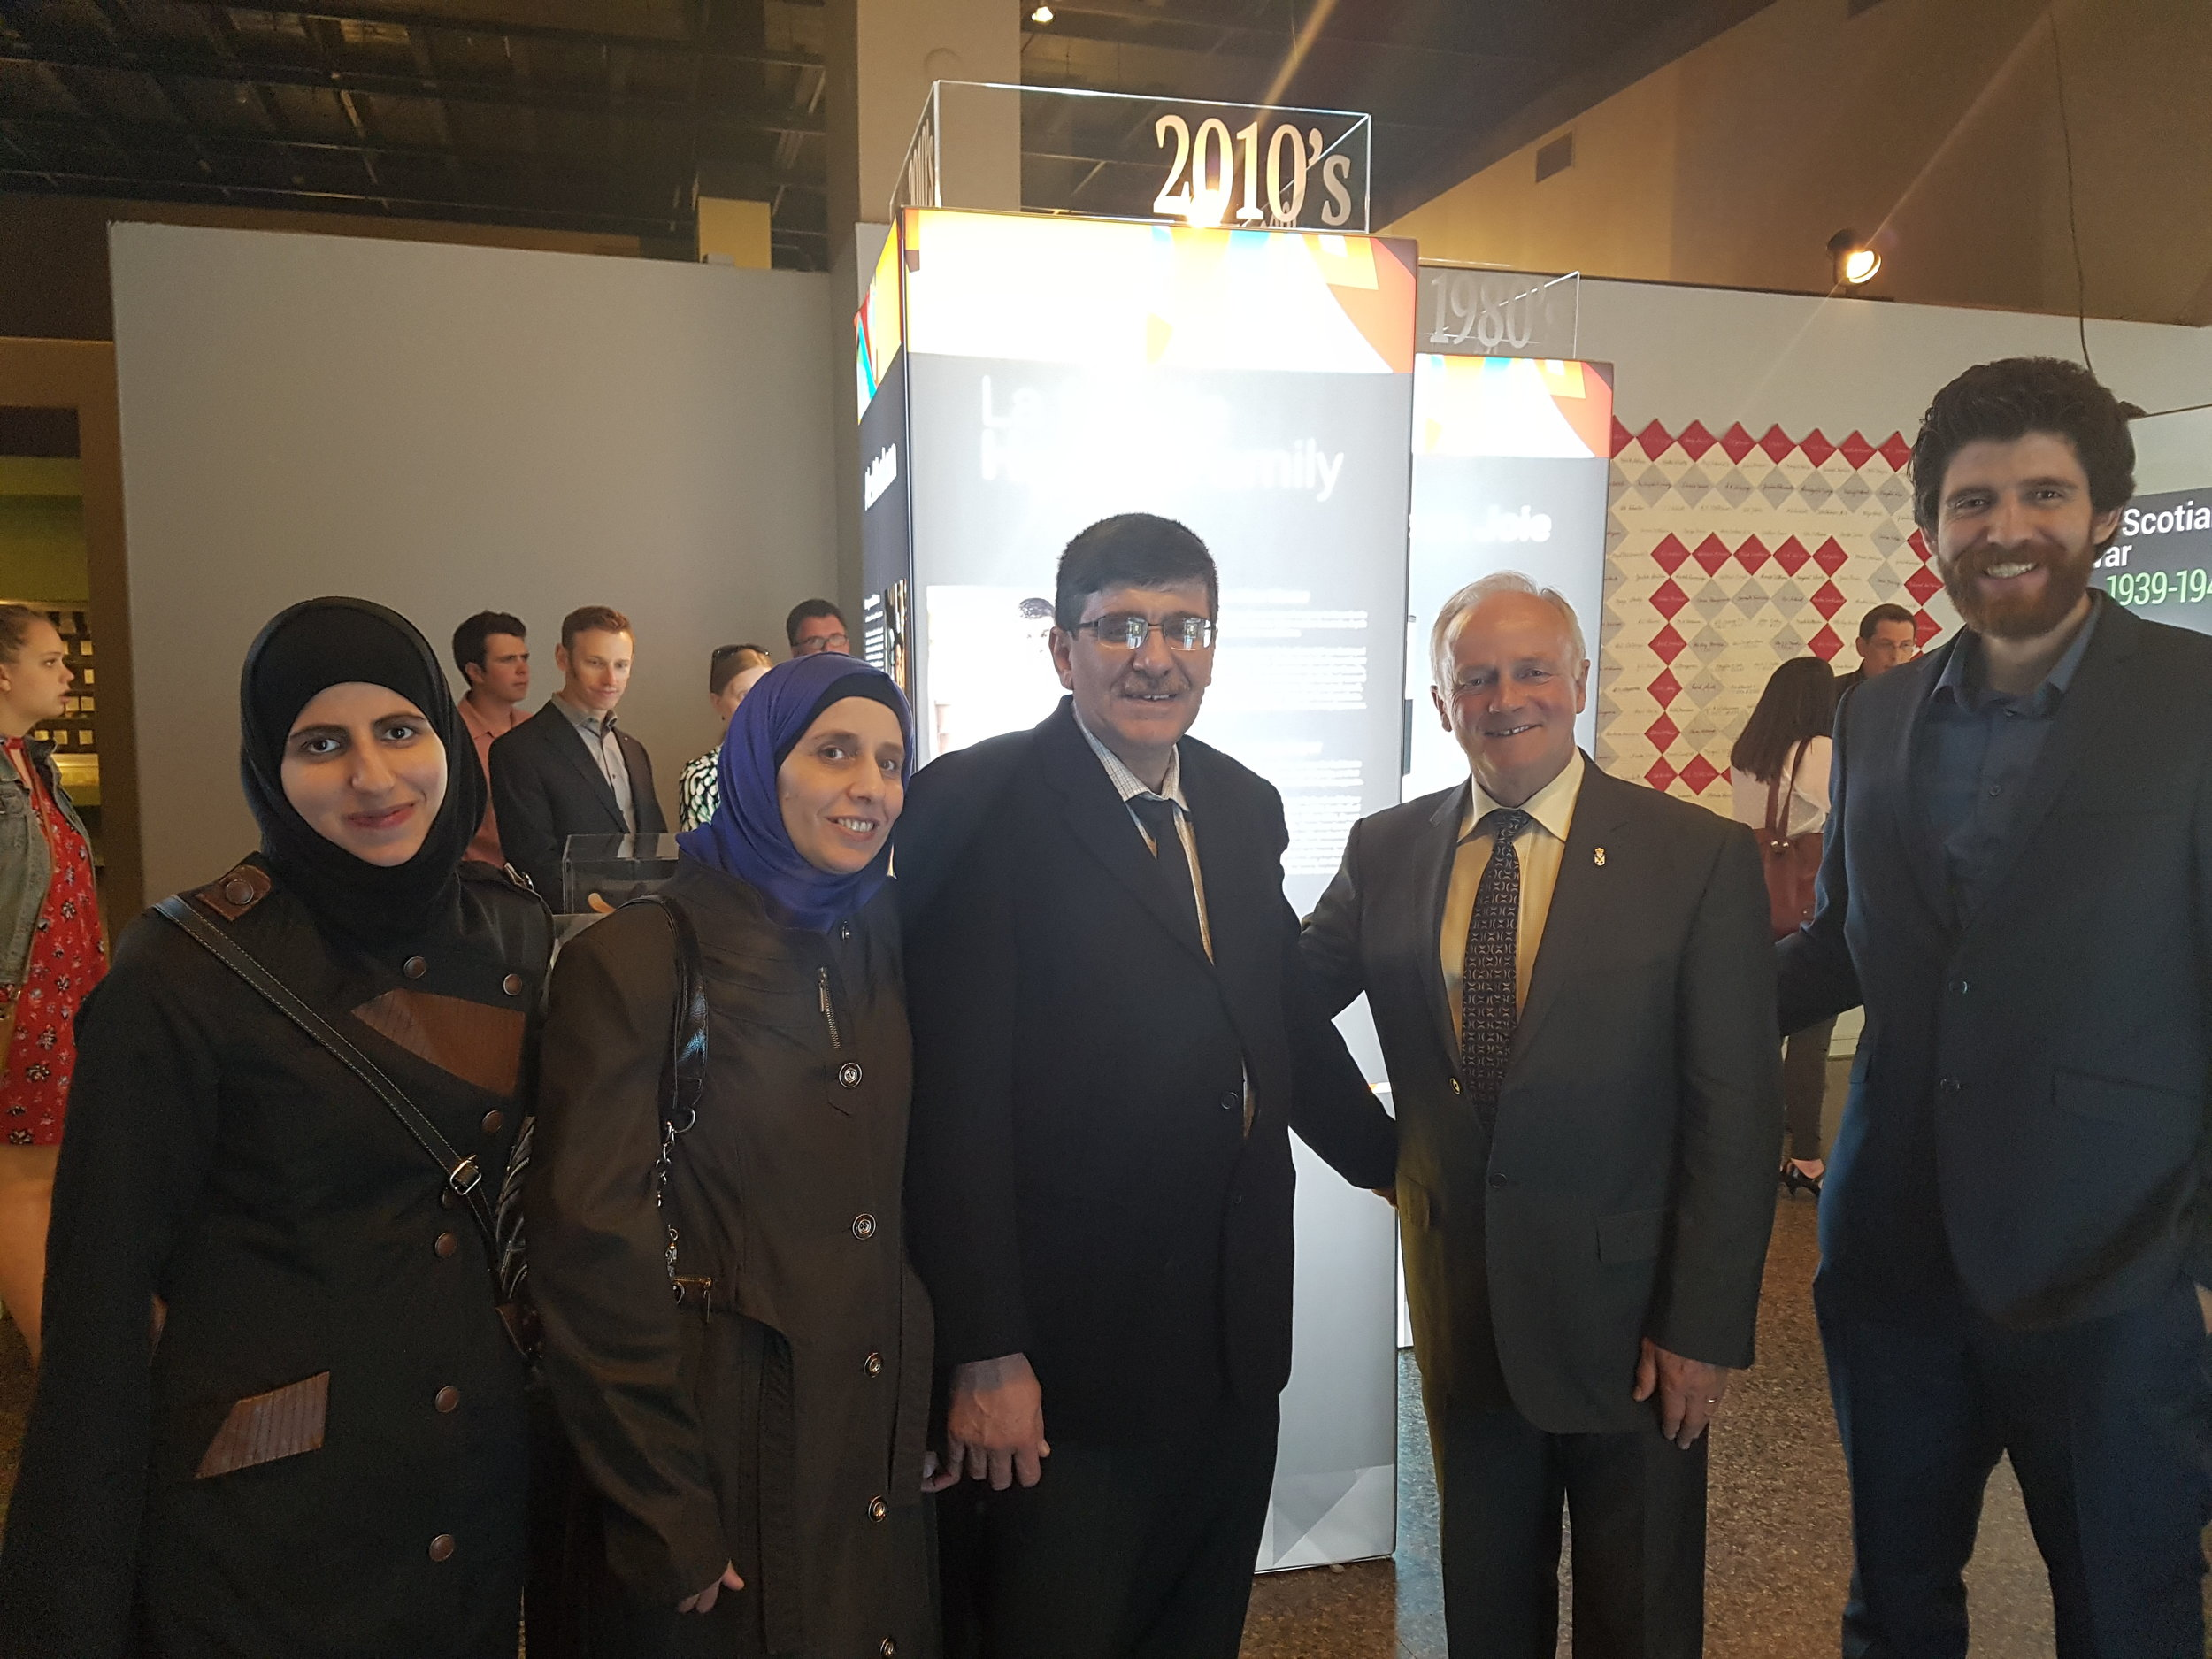 From left to right: Alaa Hadhad, Shahnaz Naisa, Isam Hadhad, Right Honorable Ministerof Heritage Leo Glavine and Tareq Hadhad celebrating the family mentioning at the Nova Scotia Museum of Natural History